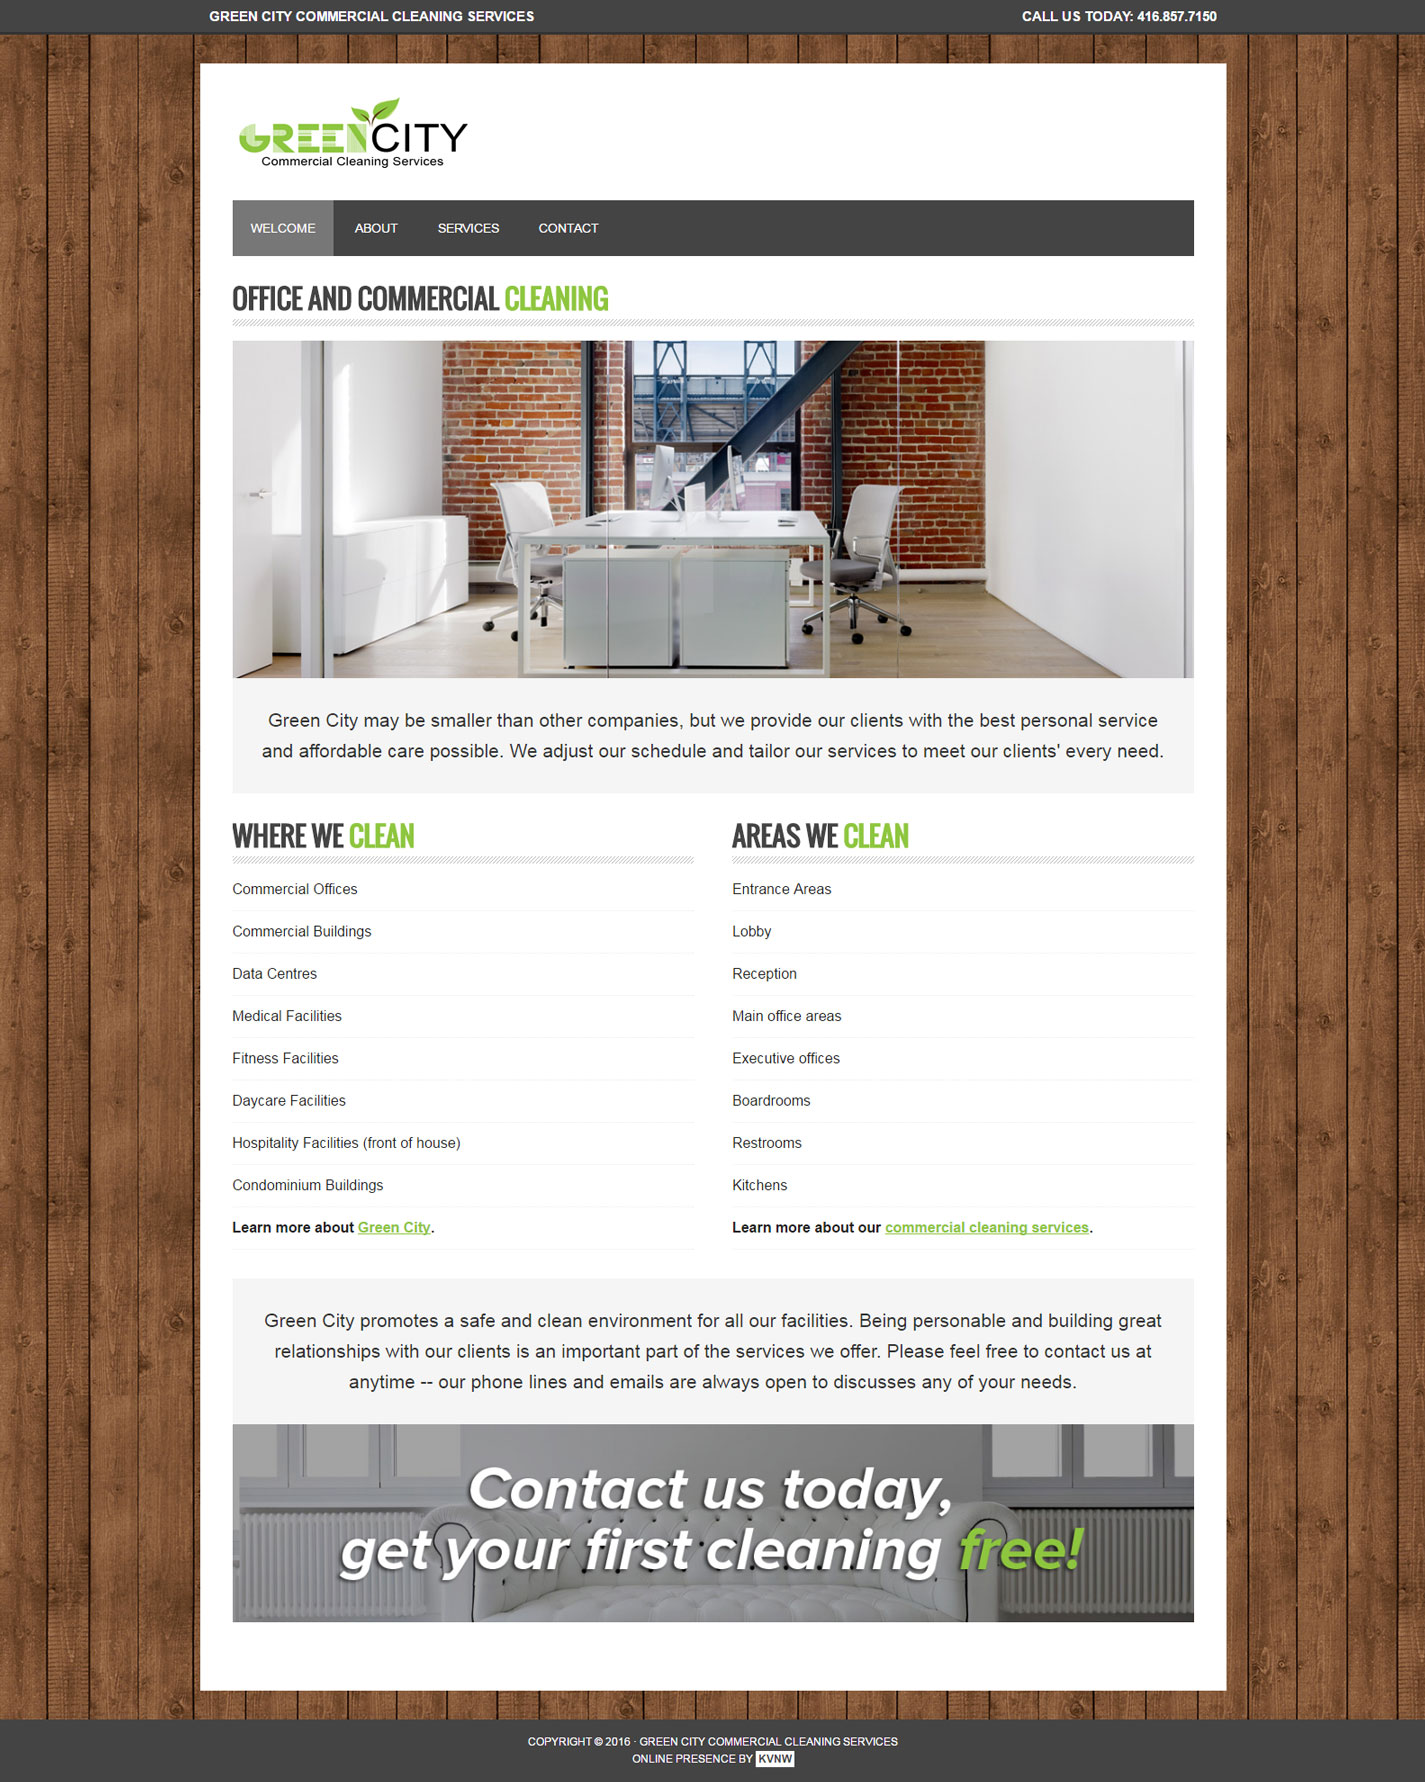 Green City Commercial Cleaning Services